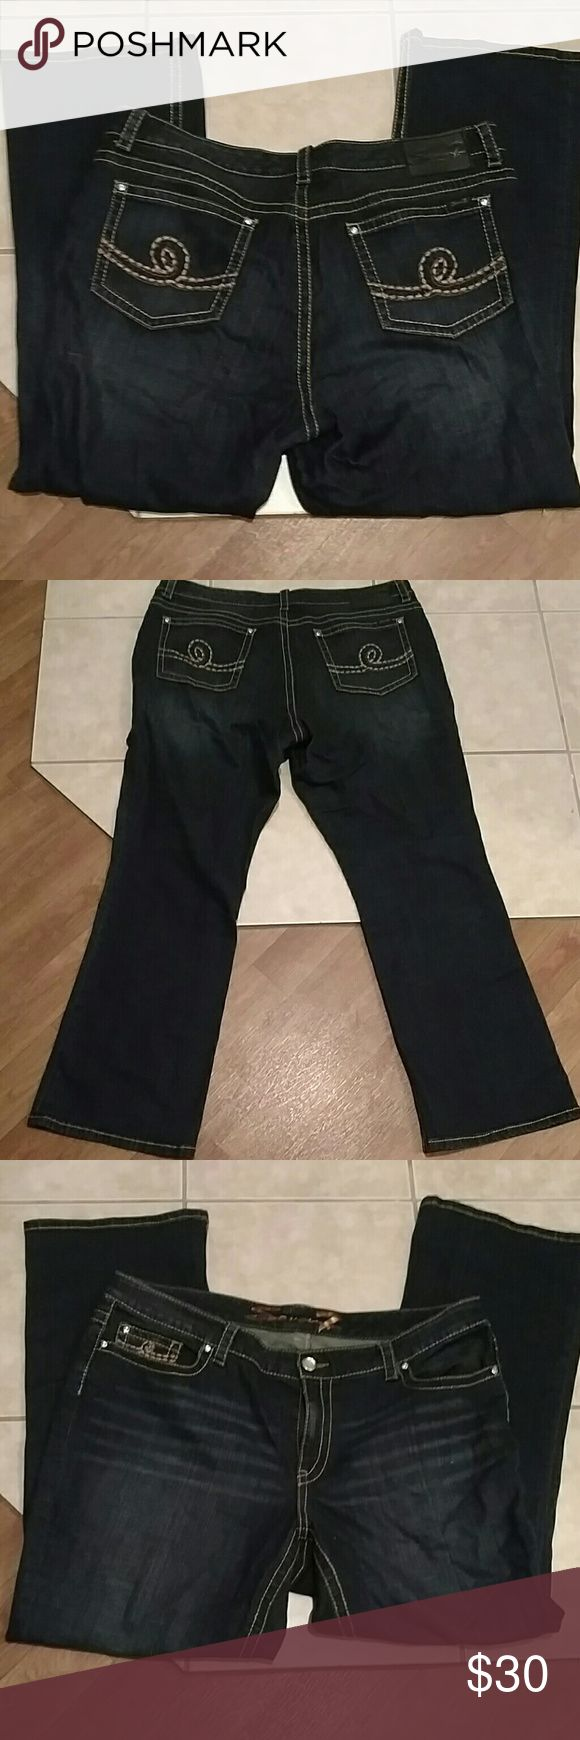 Seven jeans Sale.1 hr firm Great pair of seven jeans, dark rich blue with very minimal wear. Inseam is 33 inches, rise is 9 inches and waist flat measures 21.25 inches. These are size 22 with 98% cotton and 2% spandex so they have a nice stretch Seven7 Jeans Boot Cut